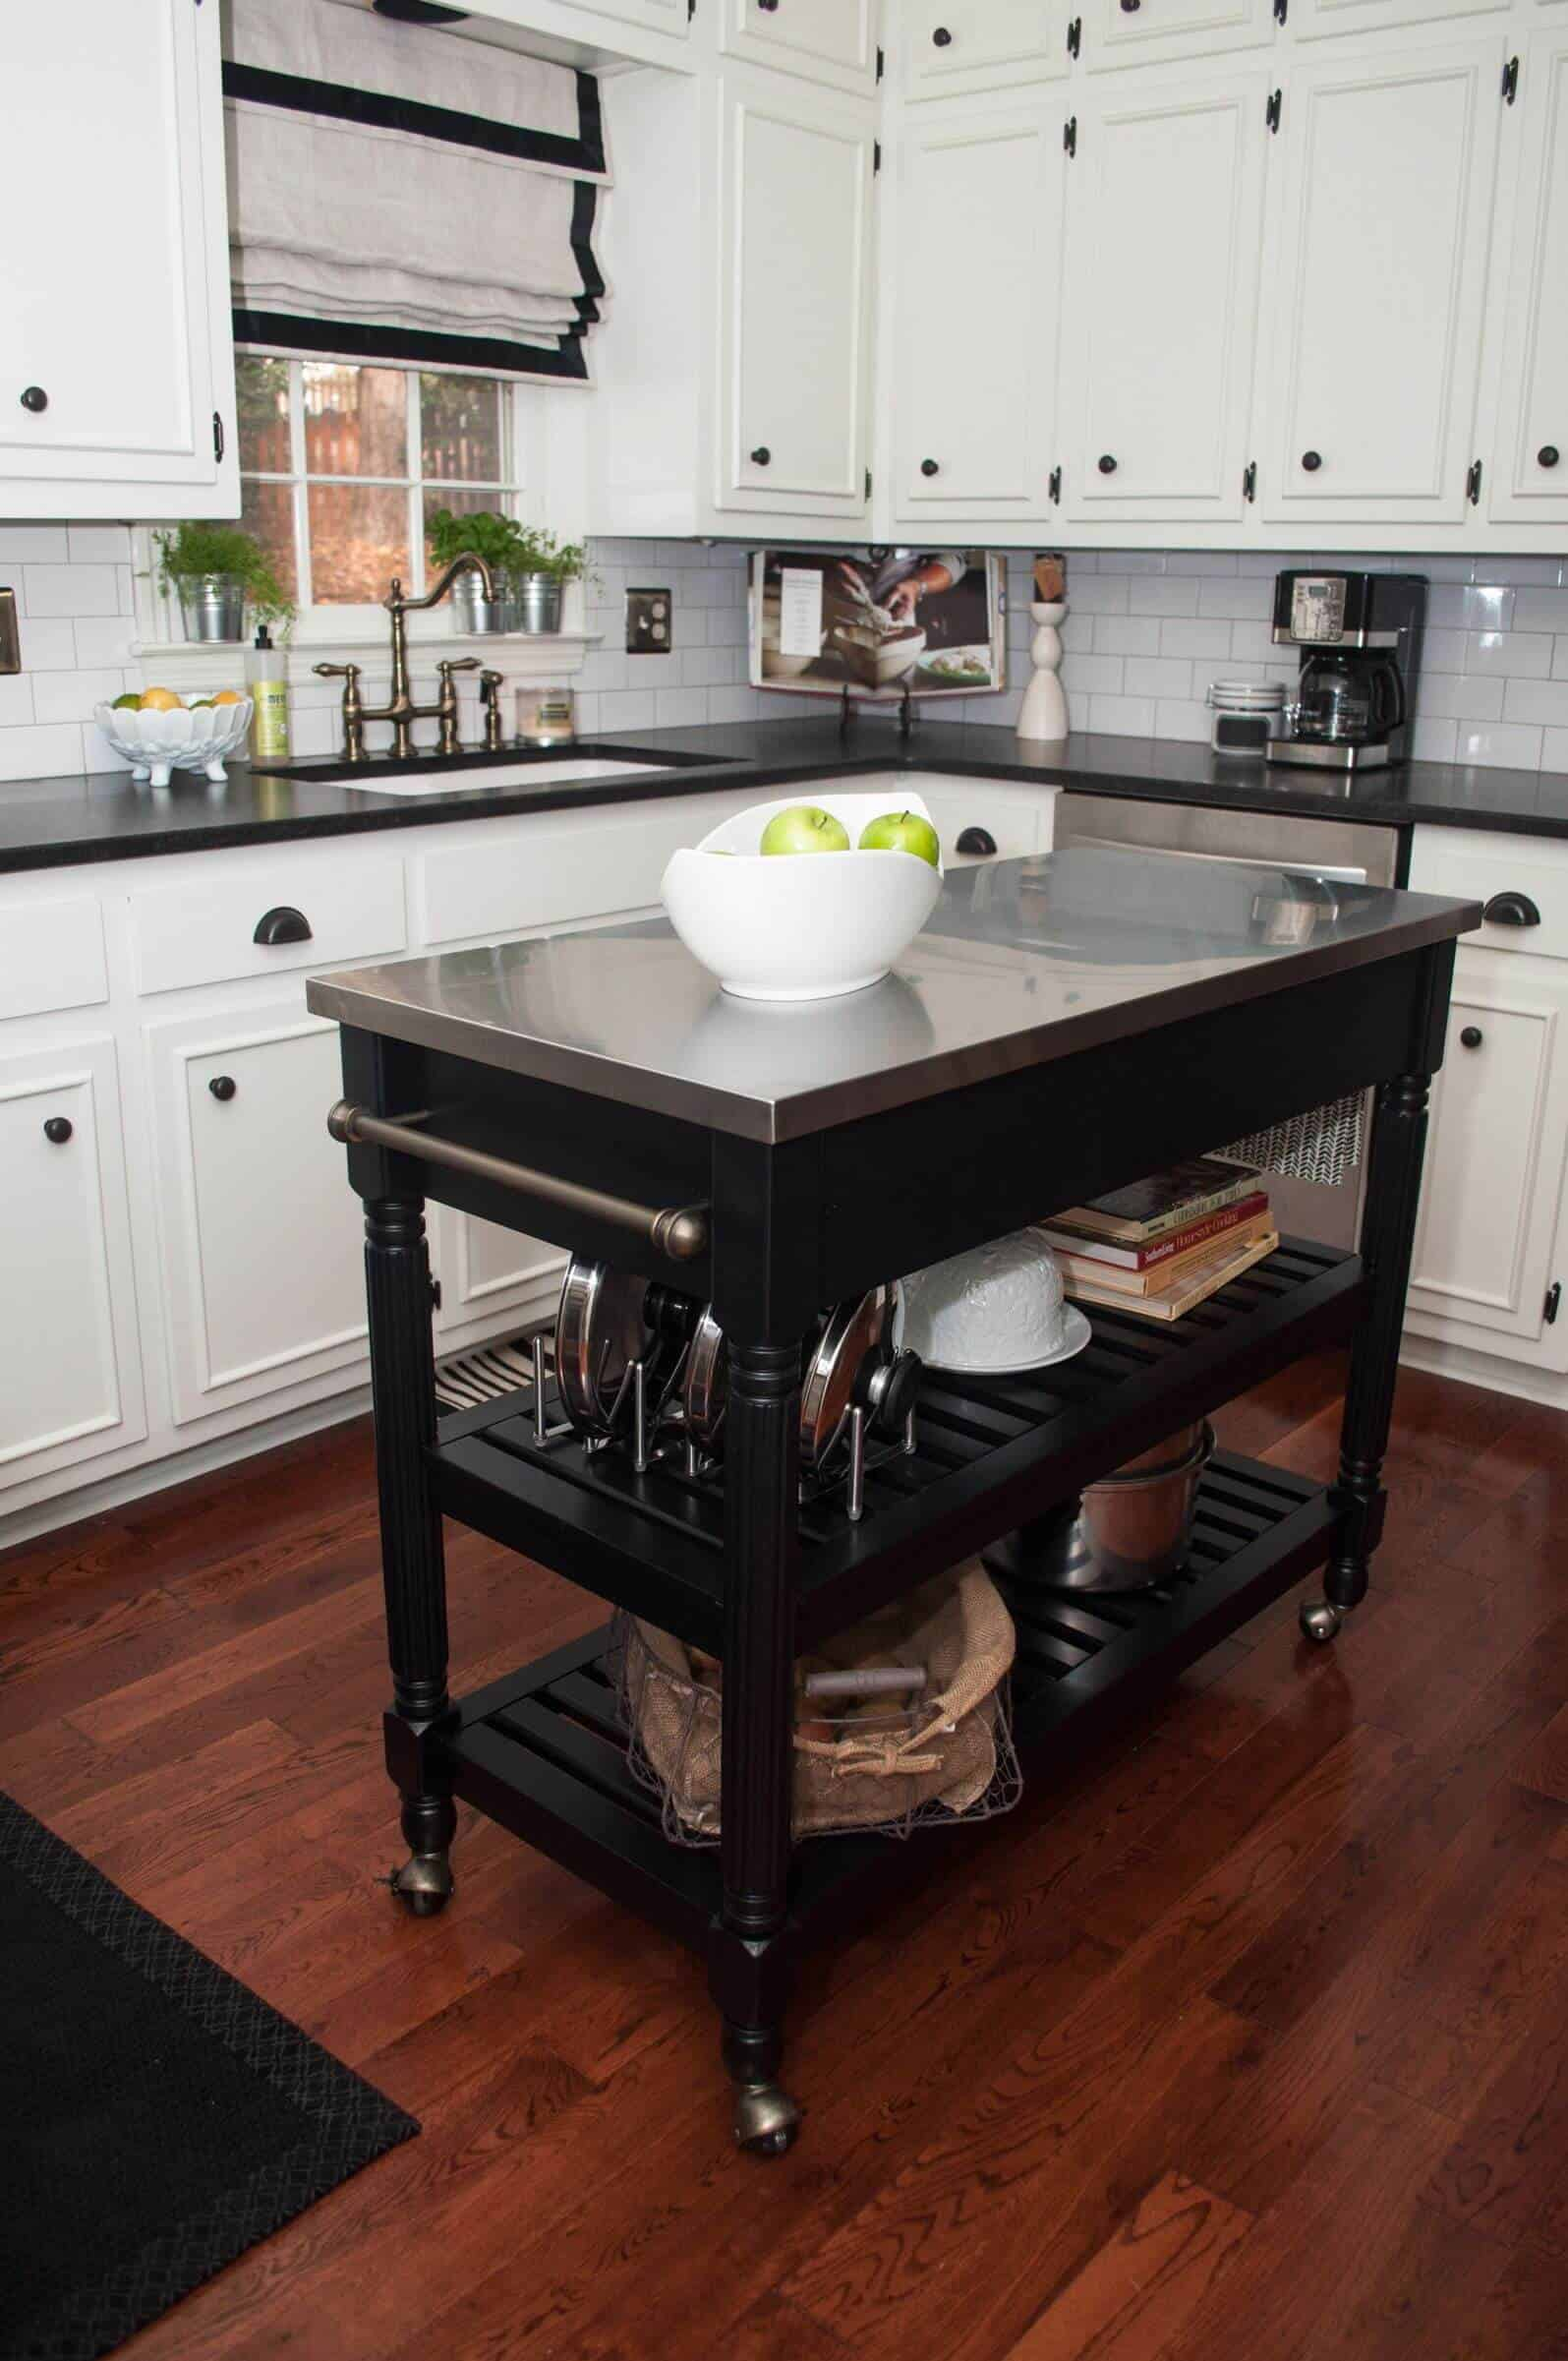 Easy and Workable Rolling kitchen island ideas (4)